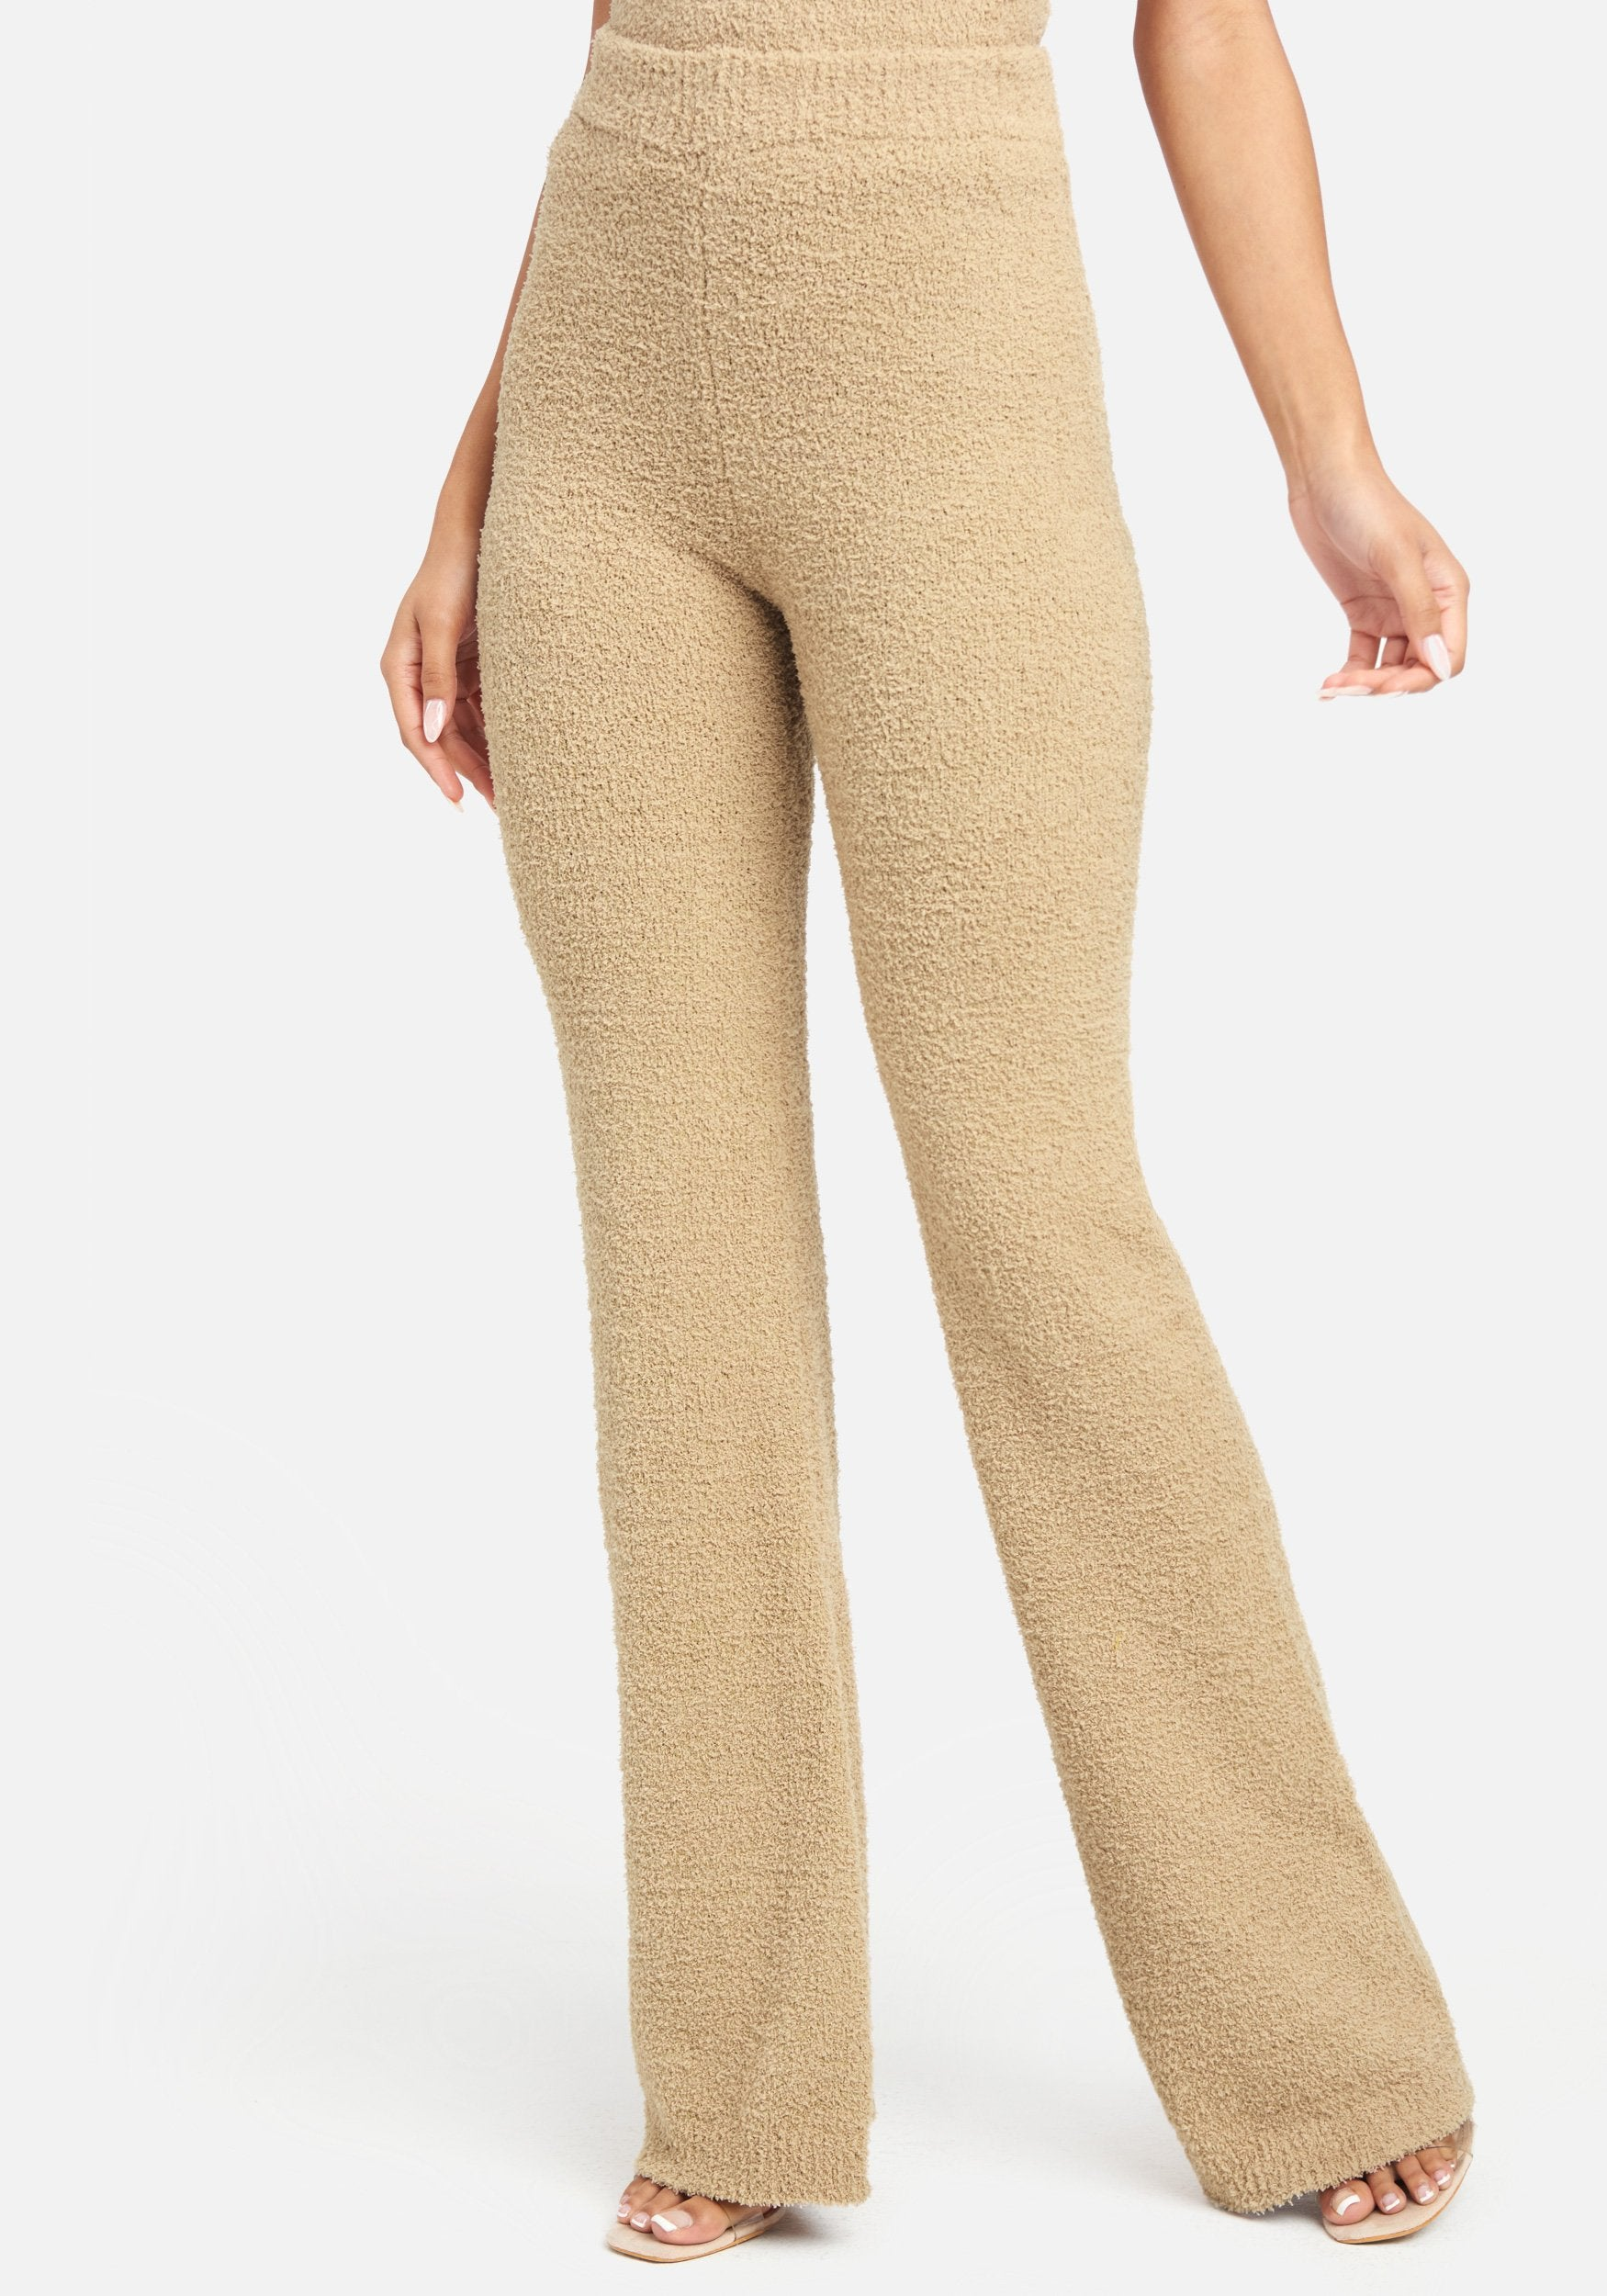 Bebe Women's Chenille Knit Pant, Size XS in Tan Polyester